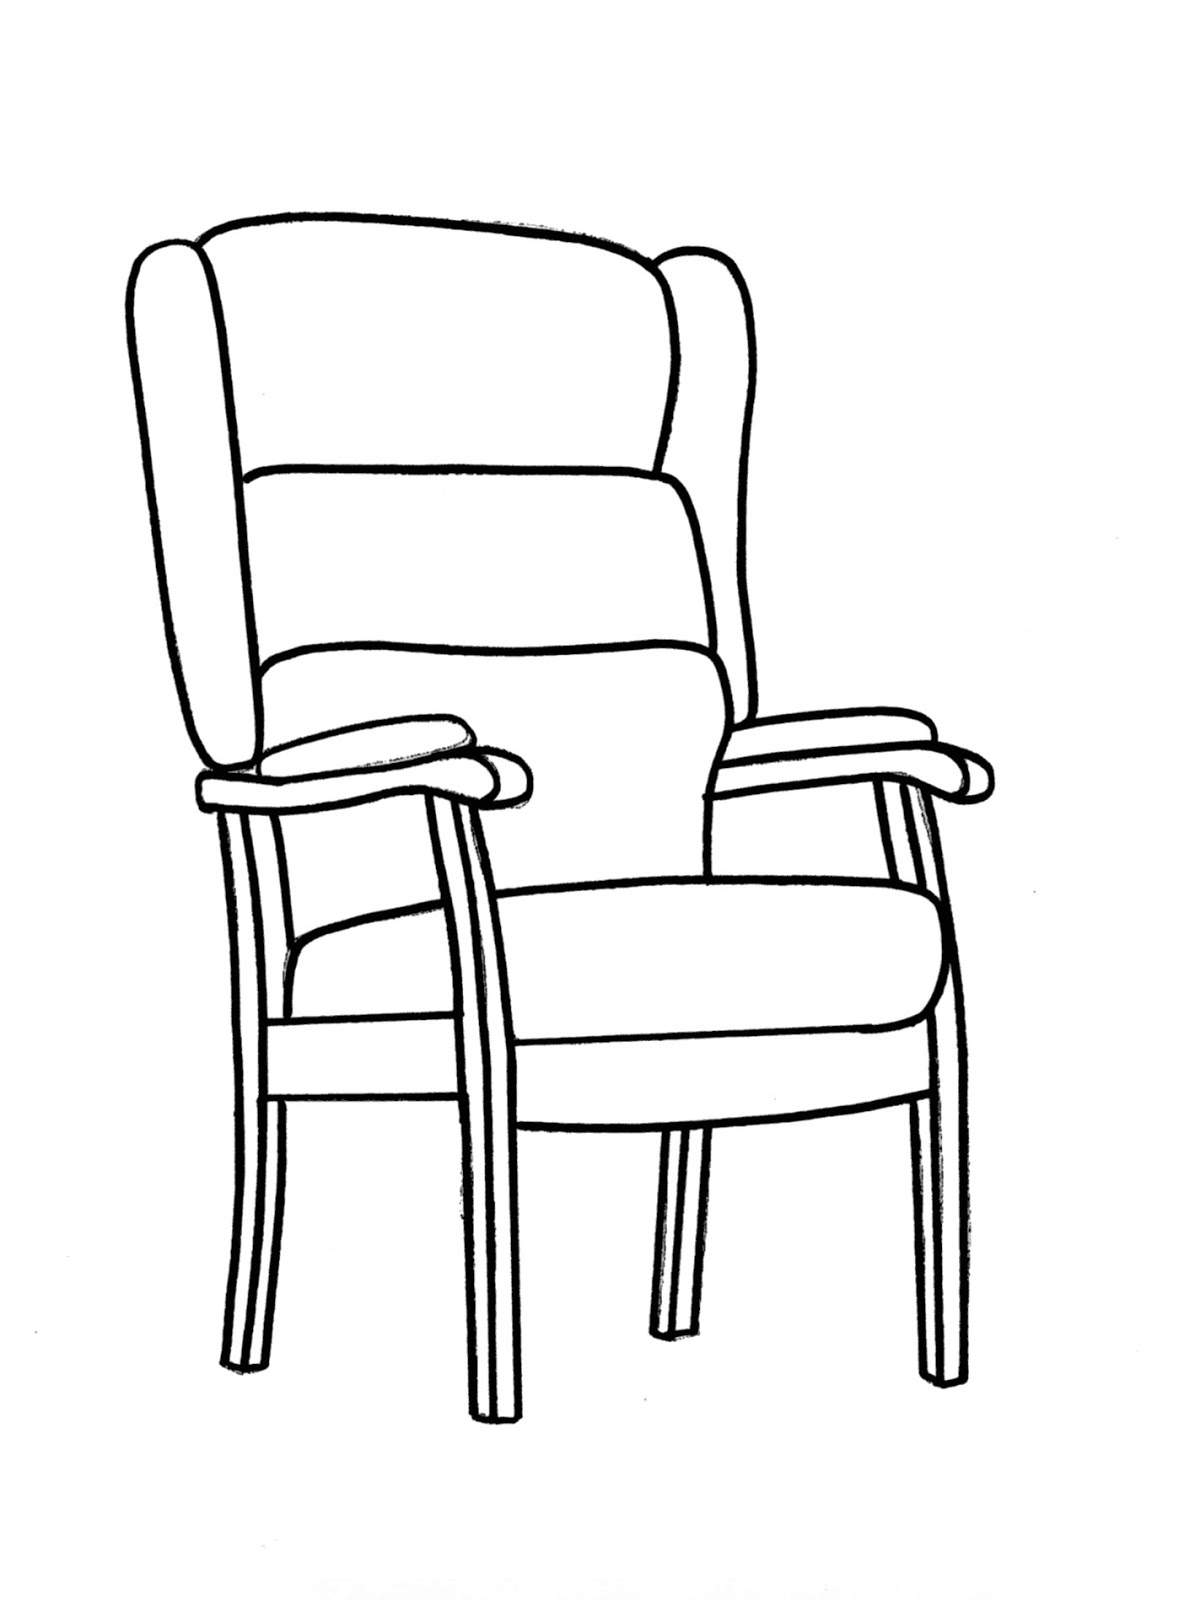 drawing chair rocking chair drawing free download on clipartmag drawing chair